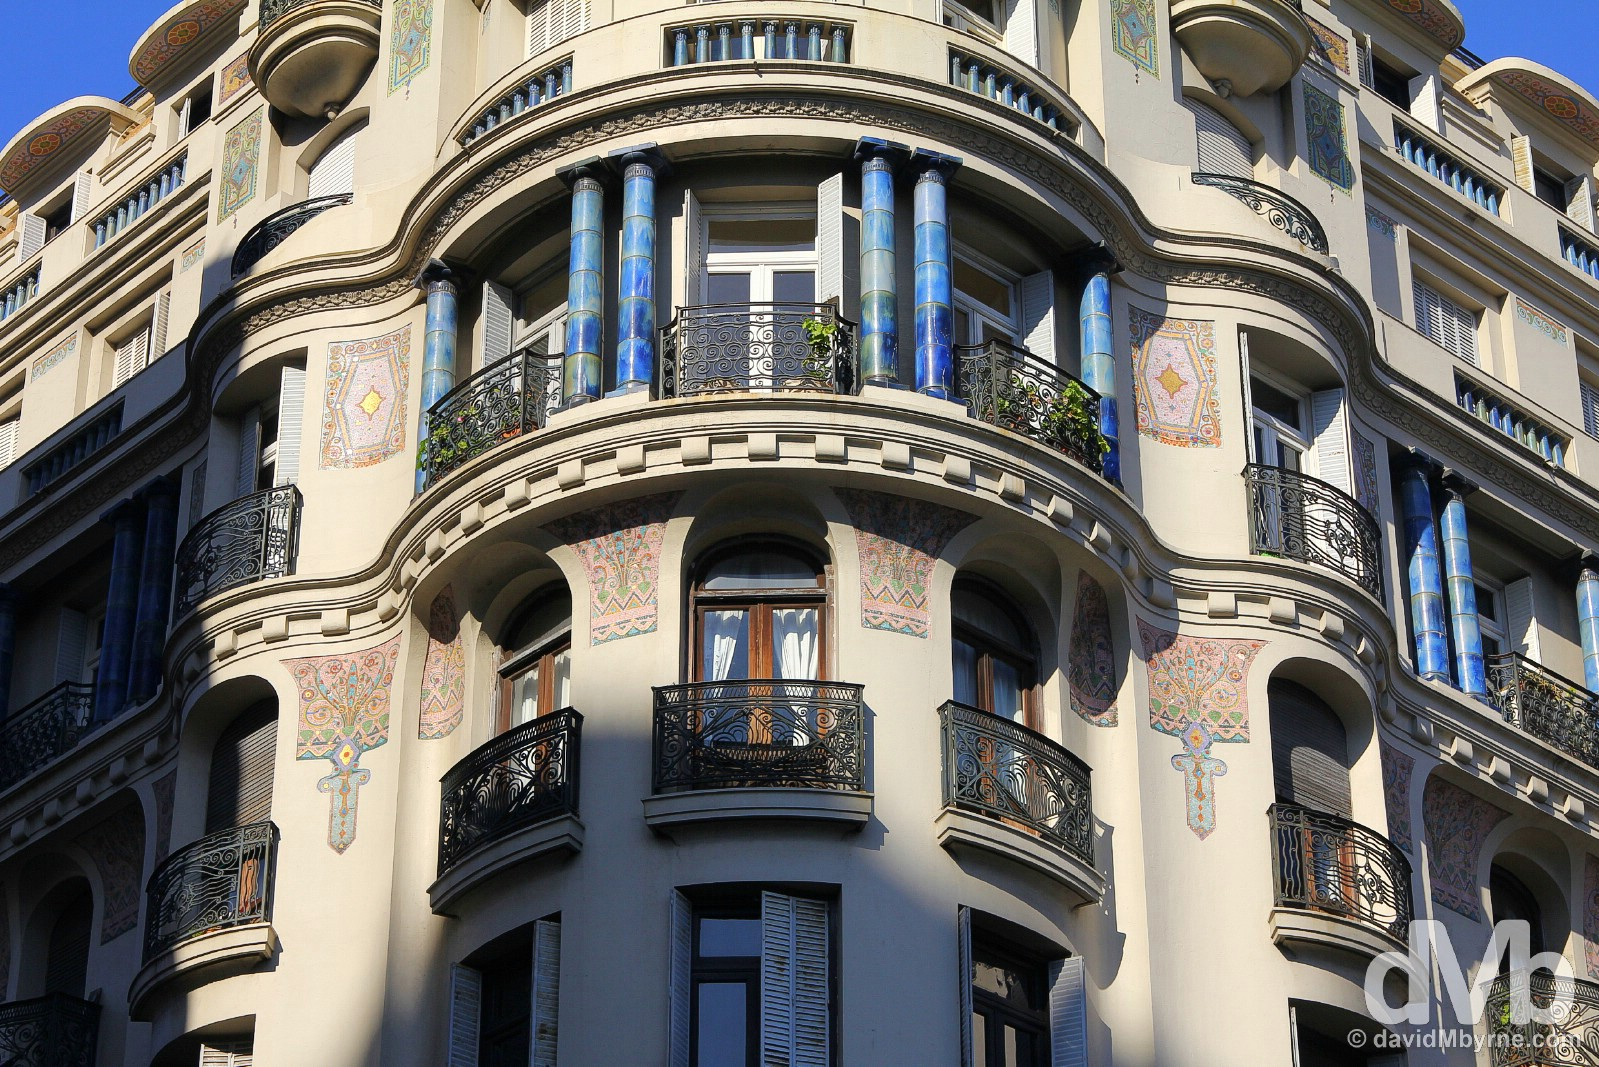 A building in Montevideo, Uruguay. September 18, 2015.